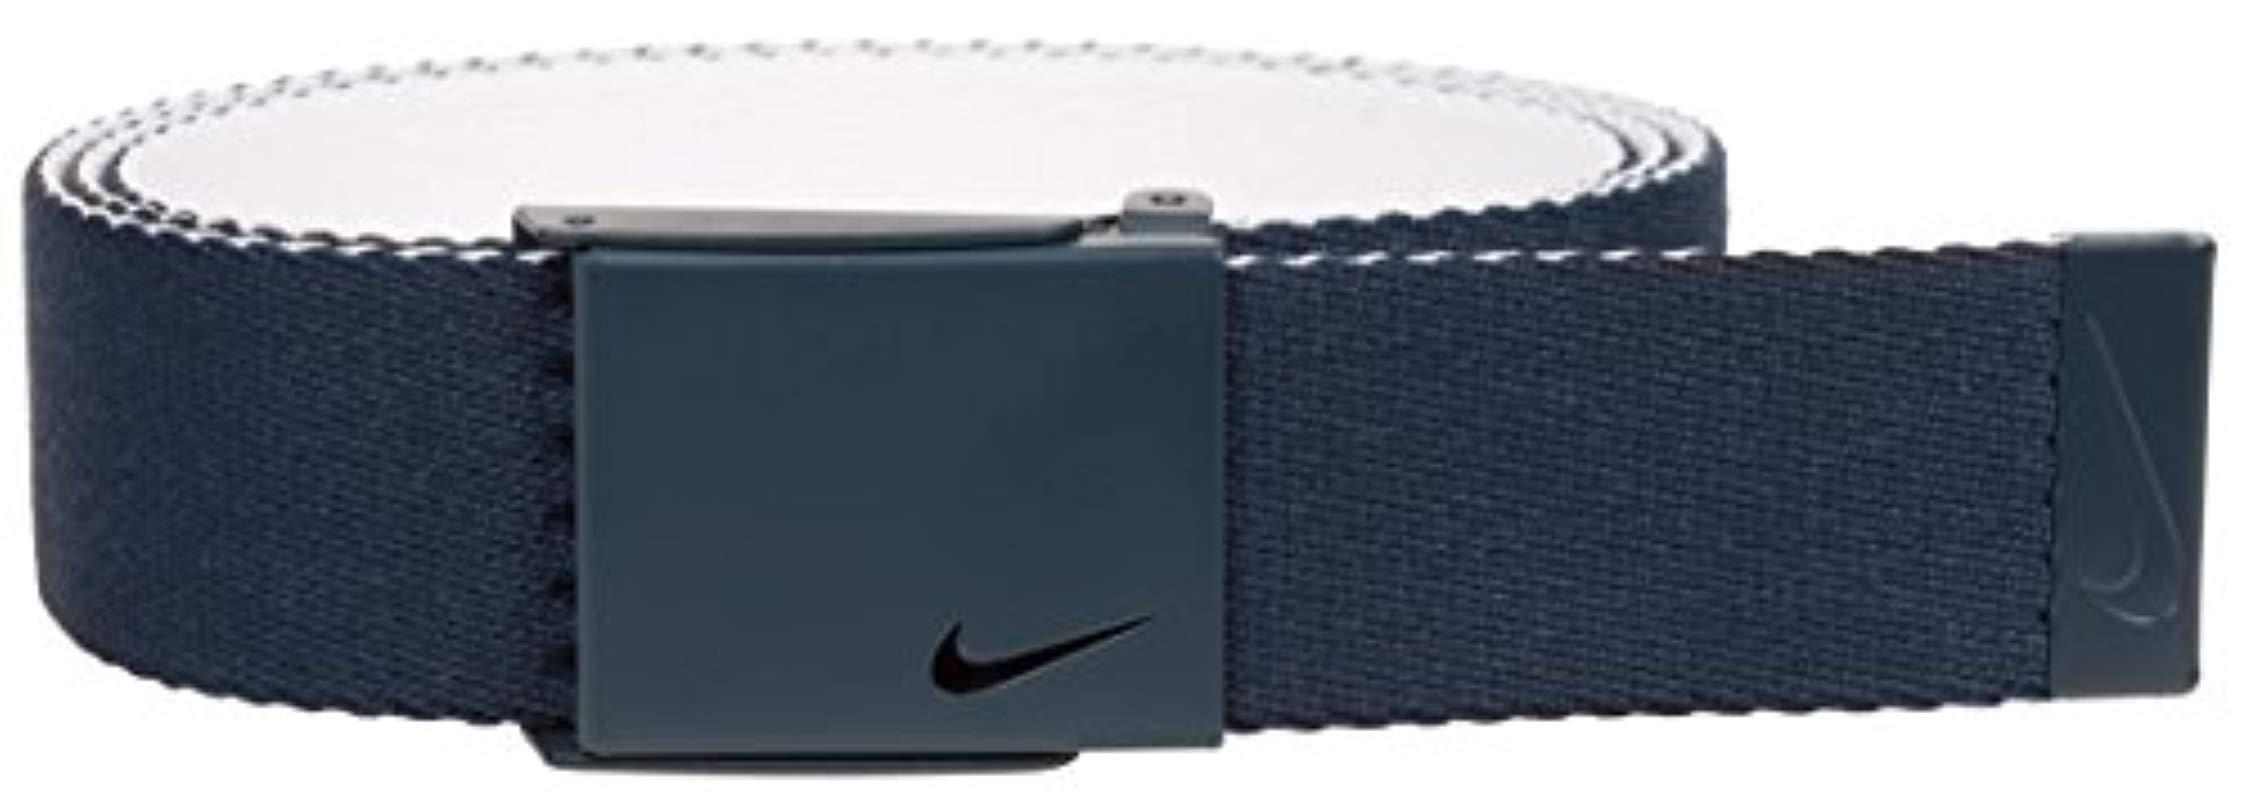 527d150454 Lyst - Nike New Tech Essentials Reversible Web Belt, College Navy ...